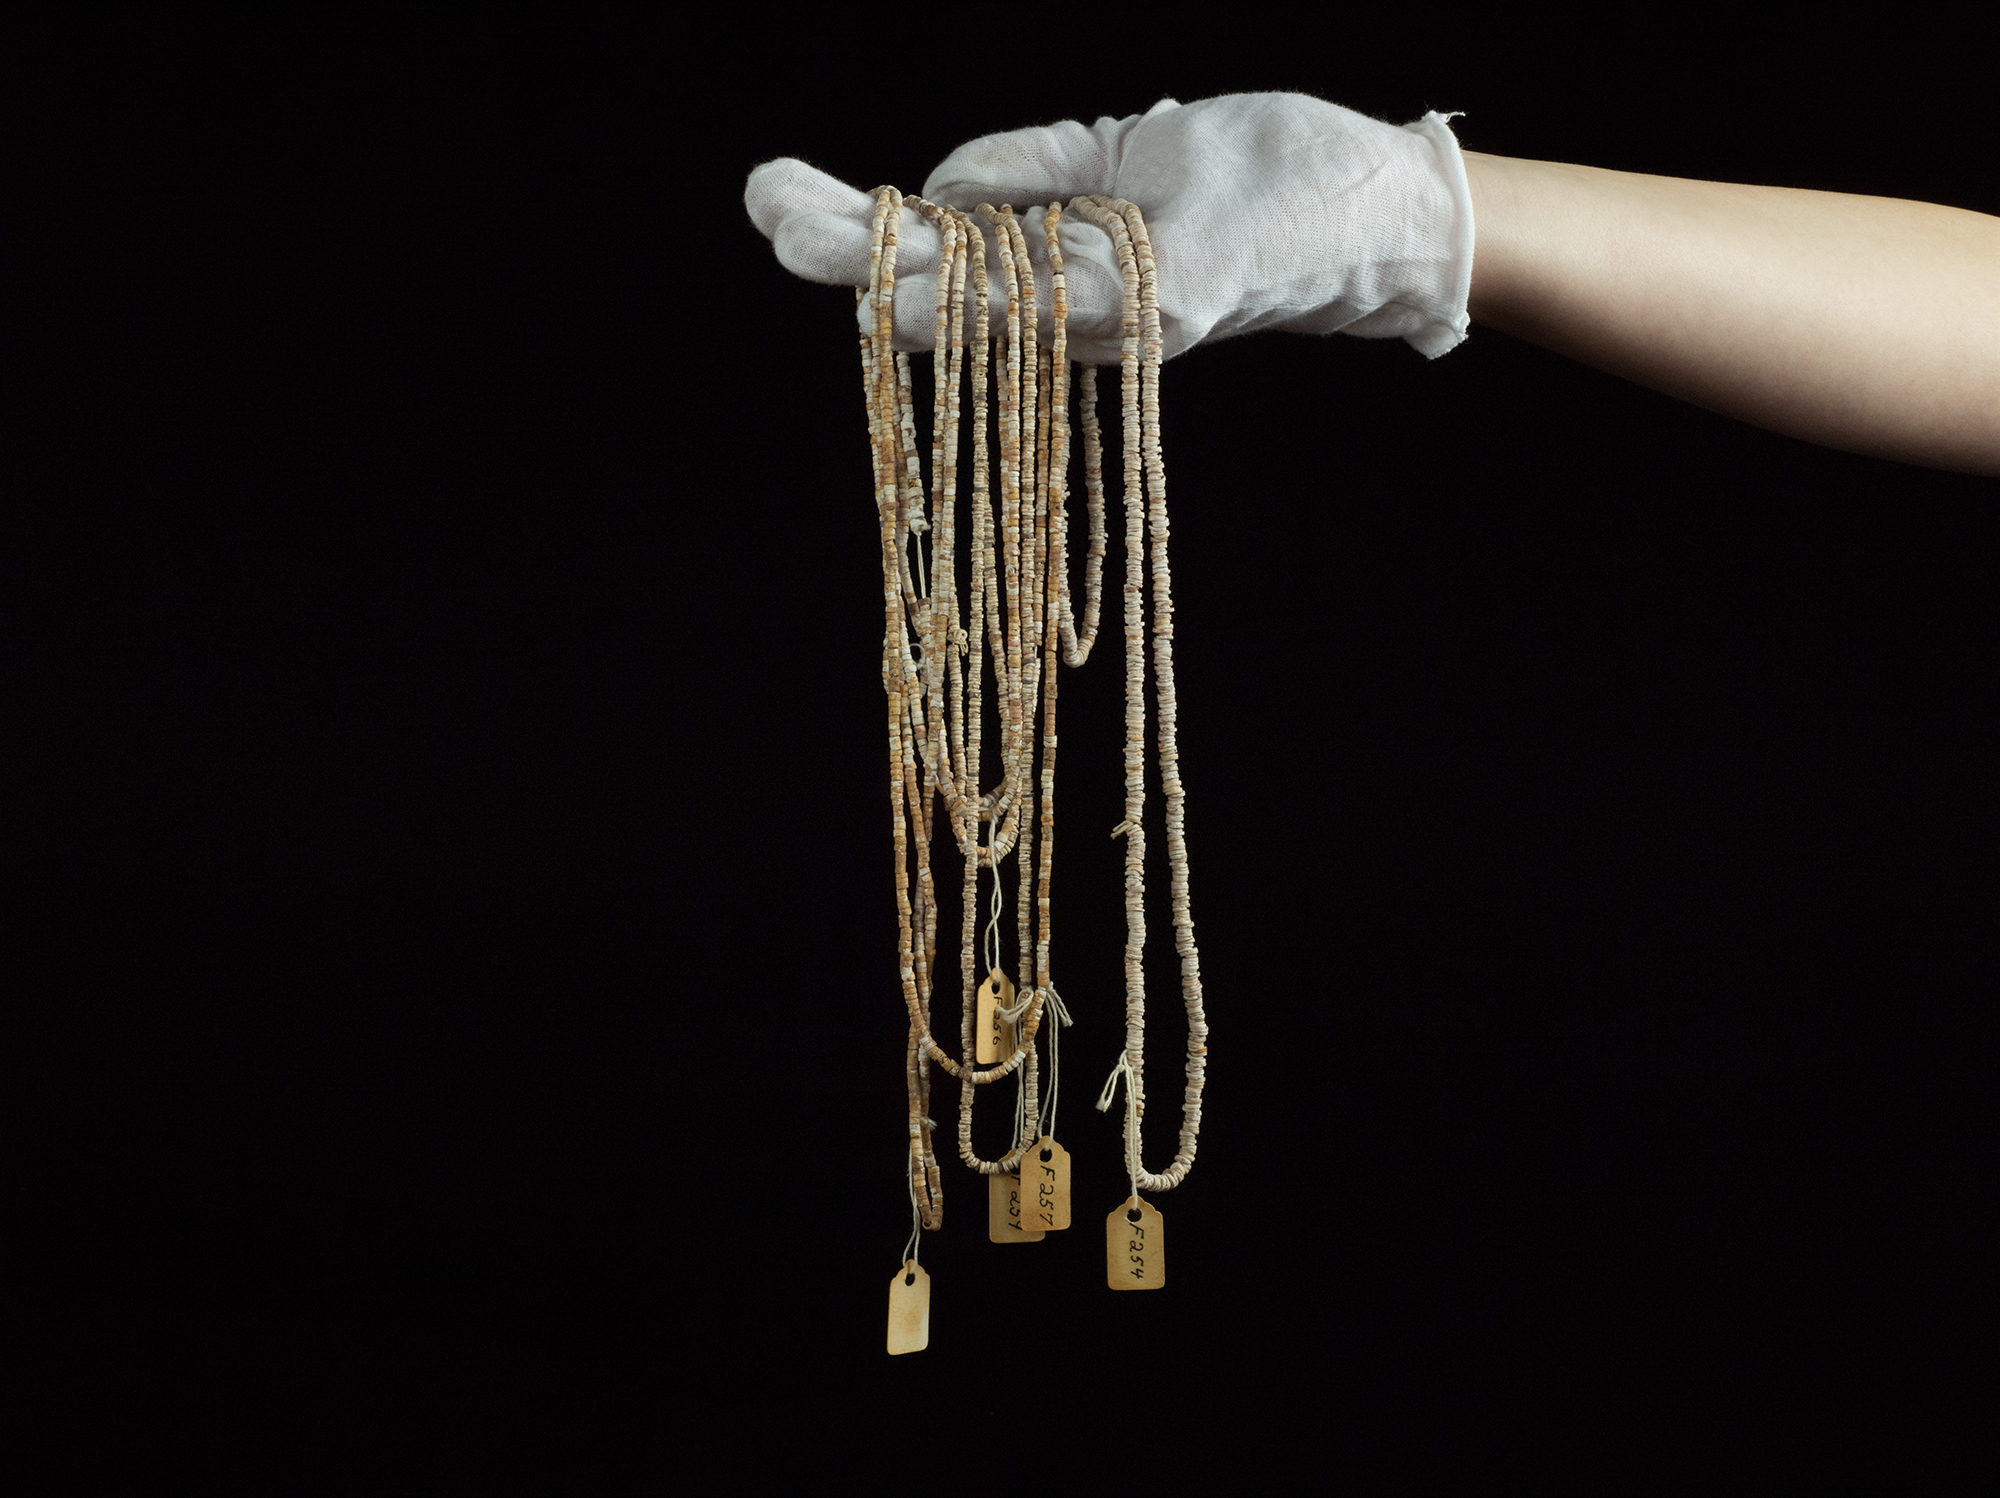 "Chumash Necklaces (in hand) at the Mission Museum San Luis Obispo, CA, 20"" x 15"", Archival Pigment Print, 2018"